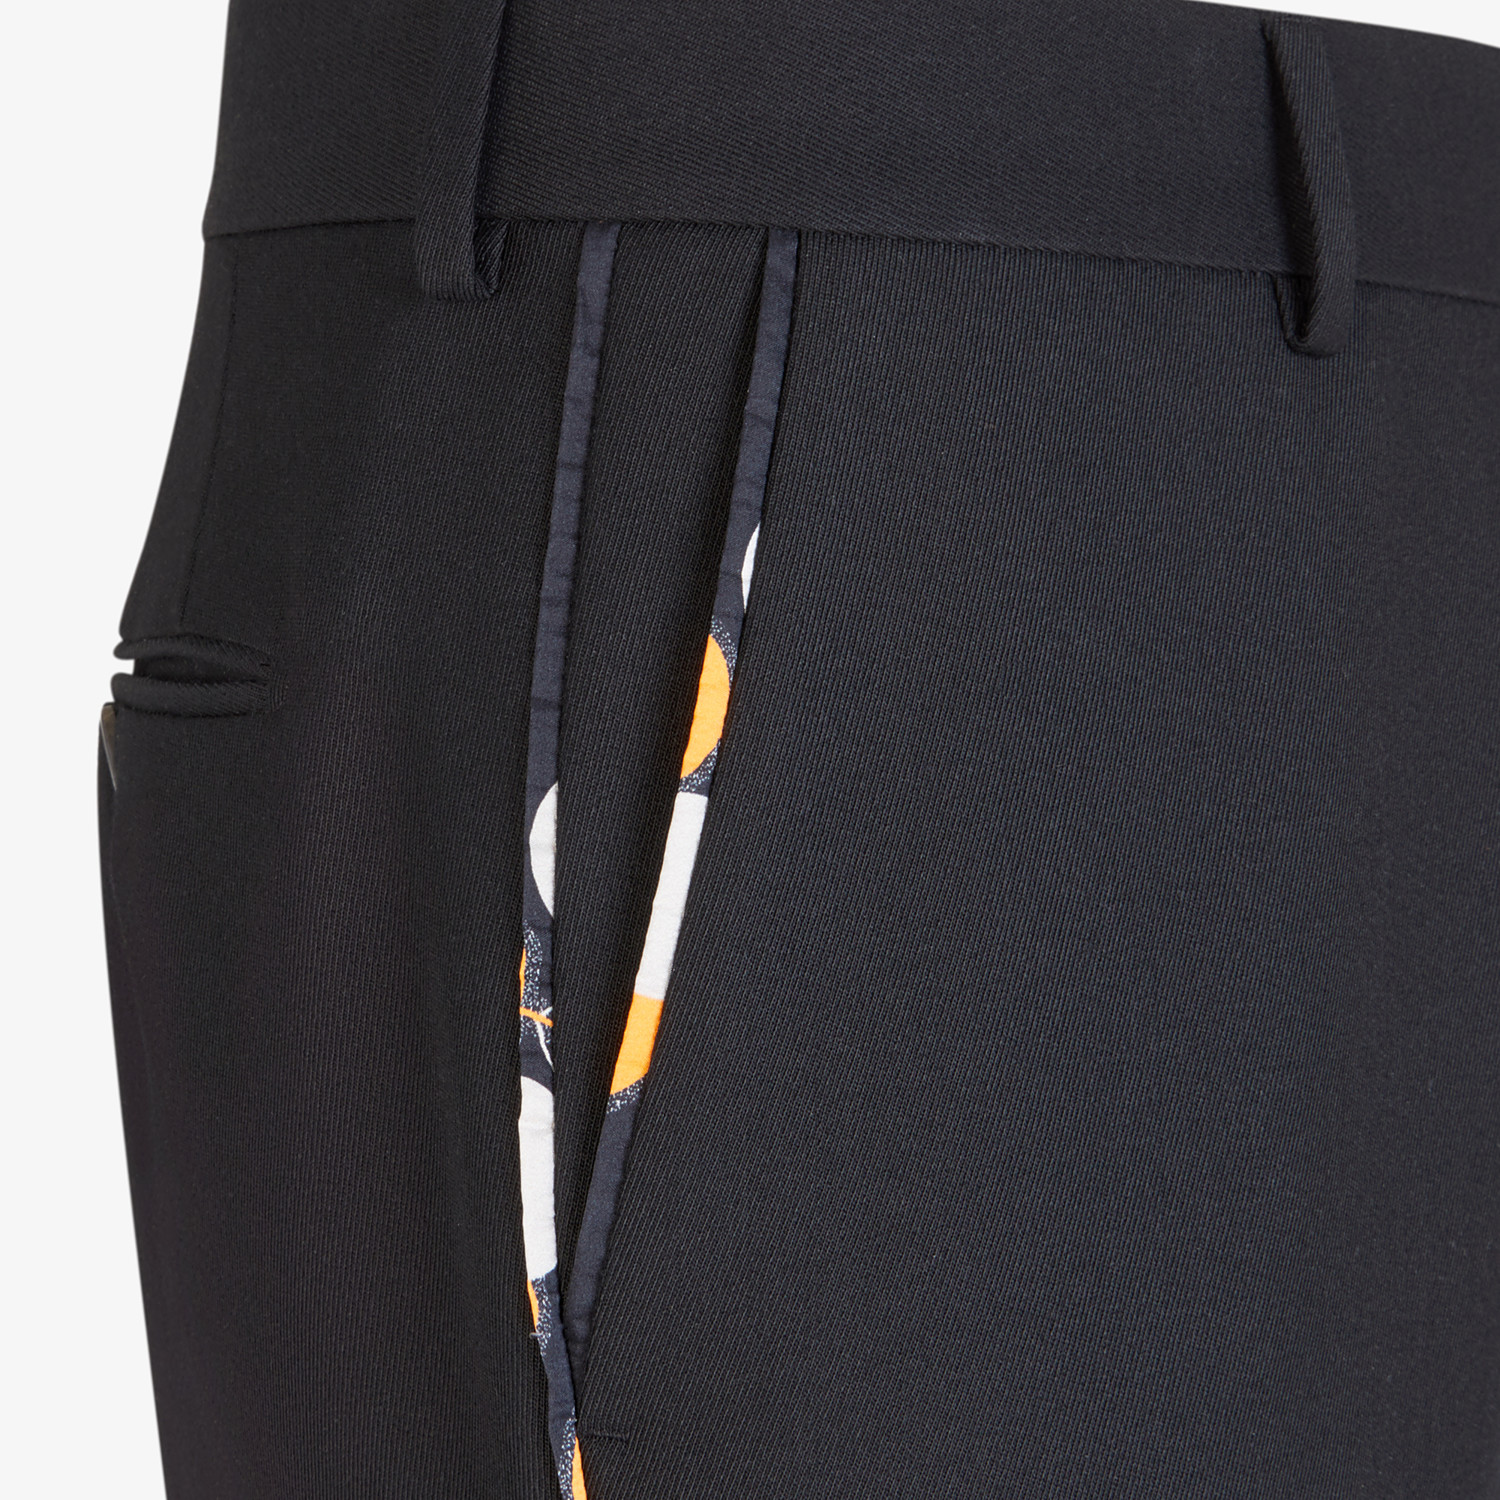 FENDI TROUSERS - Black wool trousers - view 3 detail